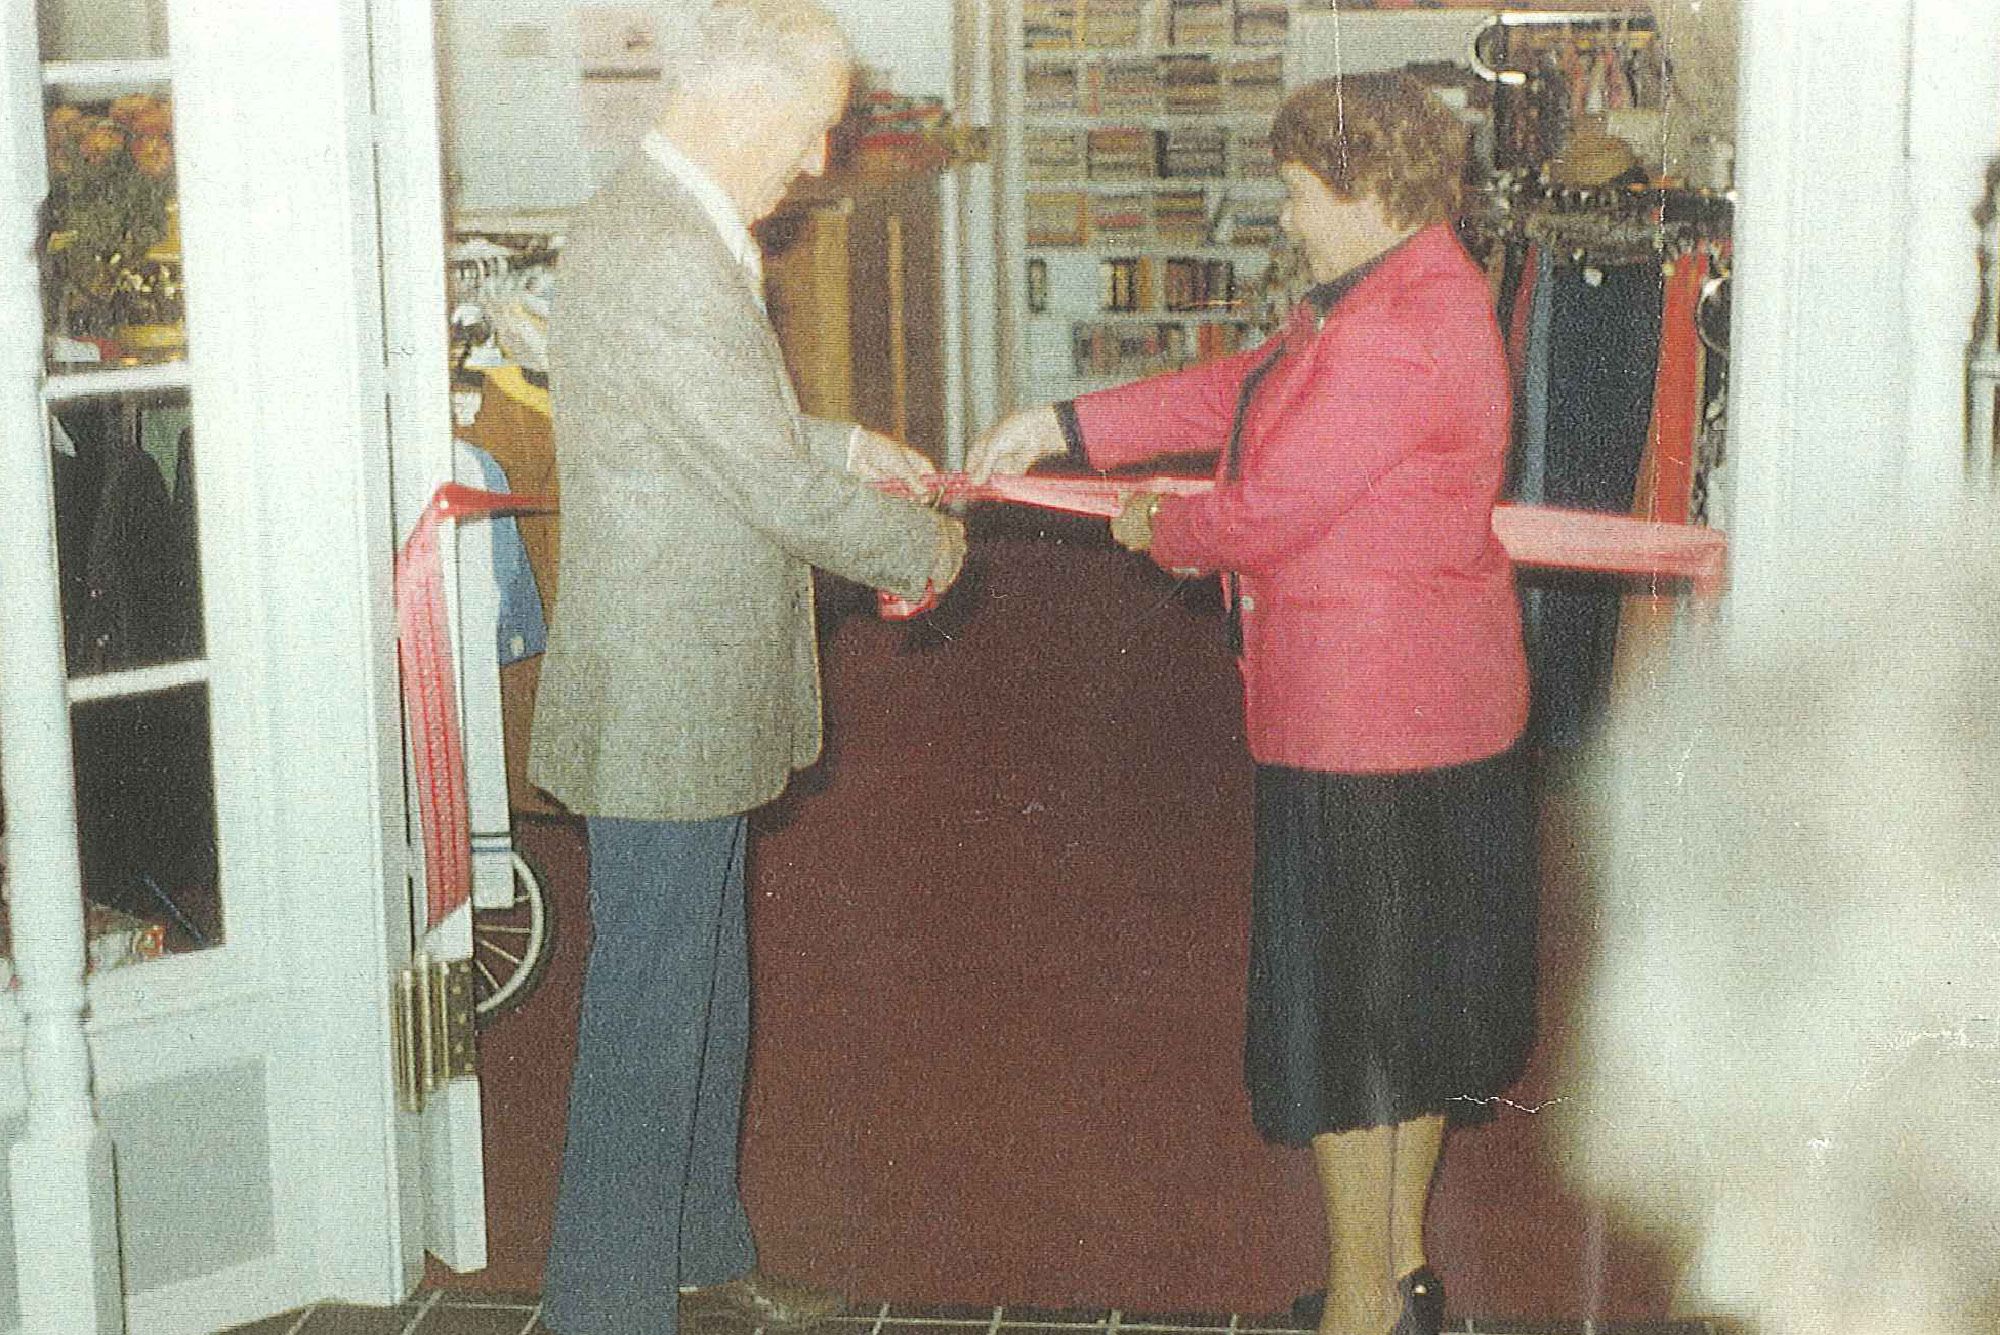 The grand opening of the Thrift Shop's new space at Bellevue Square in 1981